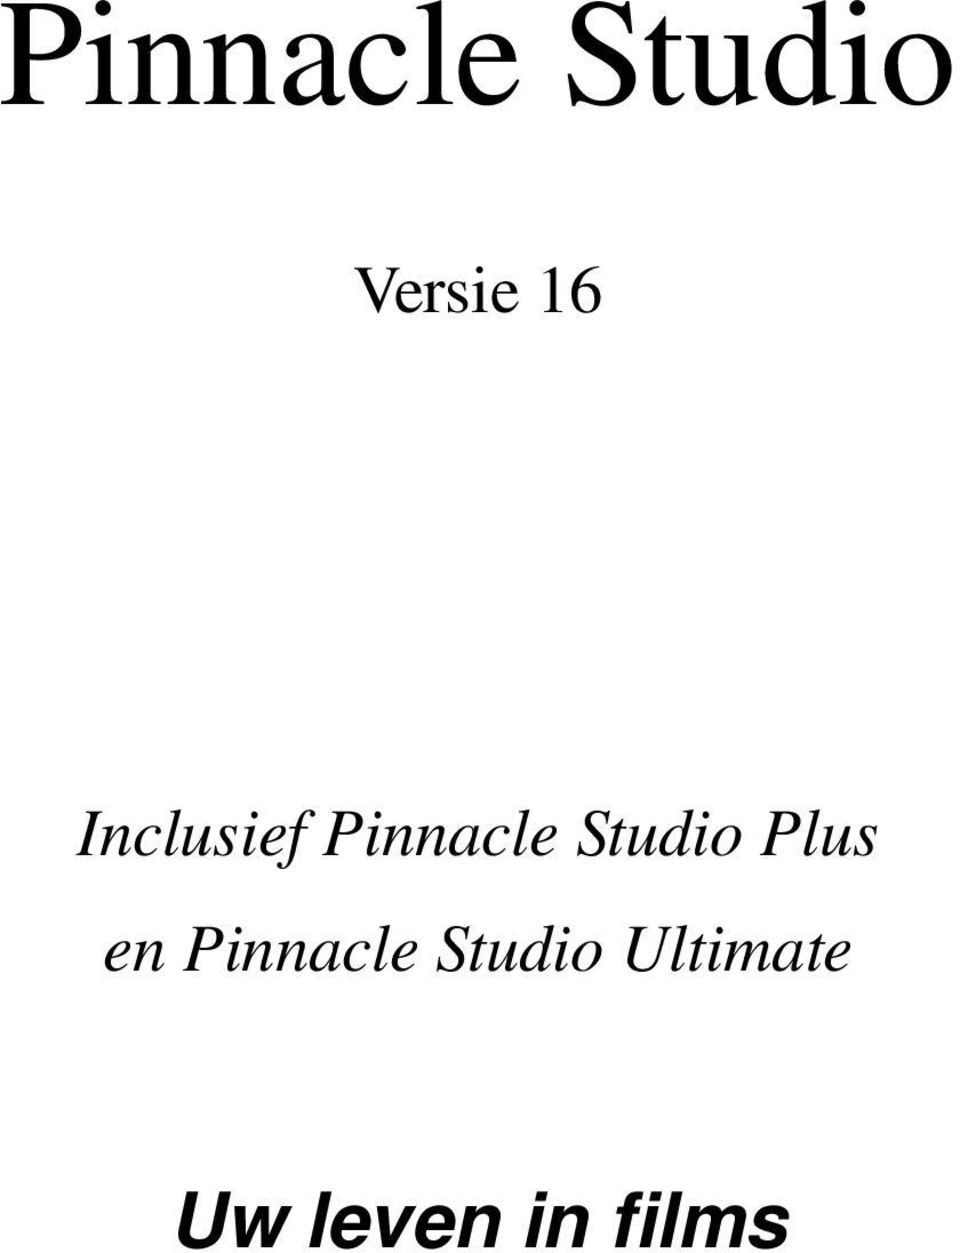 Plus en Pinnacle Studio